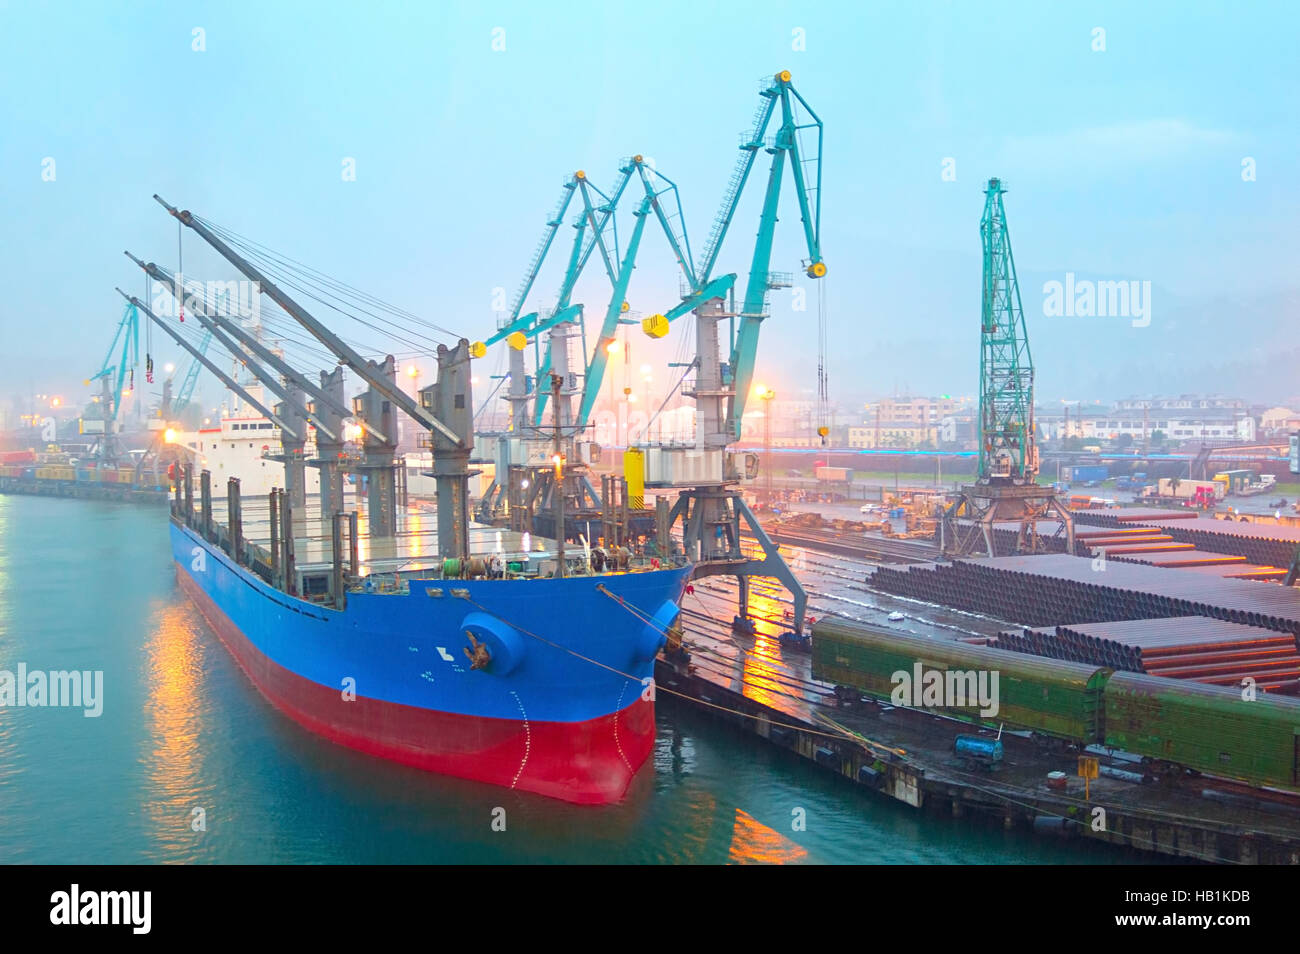 Batumi industrial port, Georgia - Stock Image